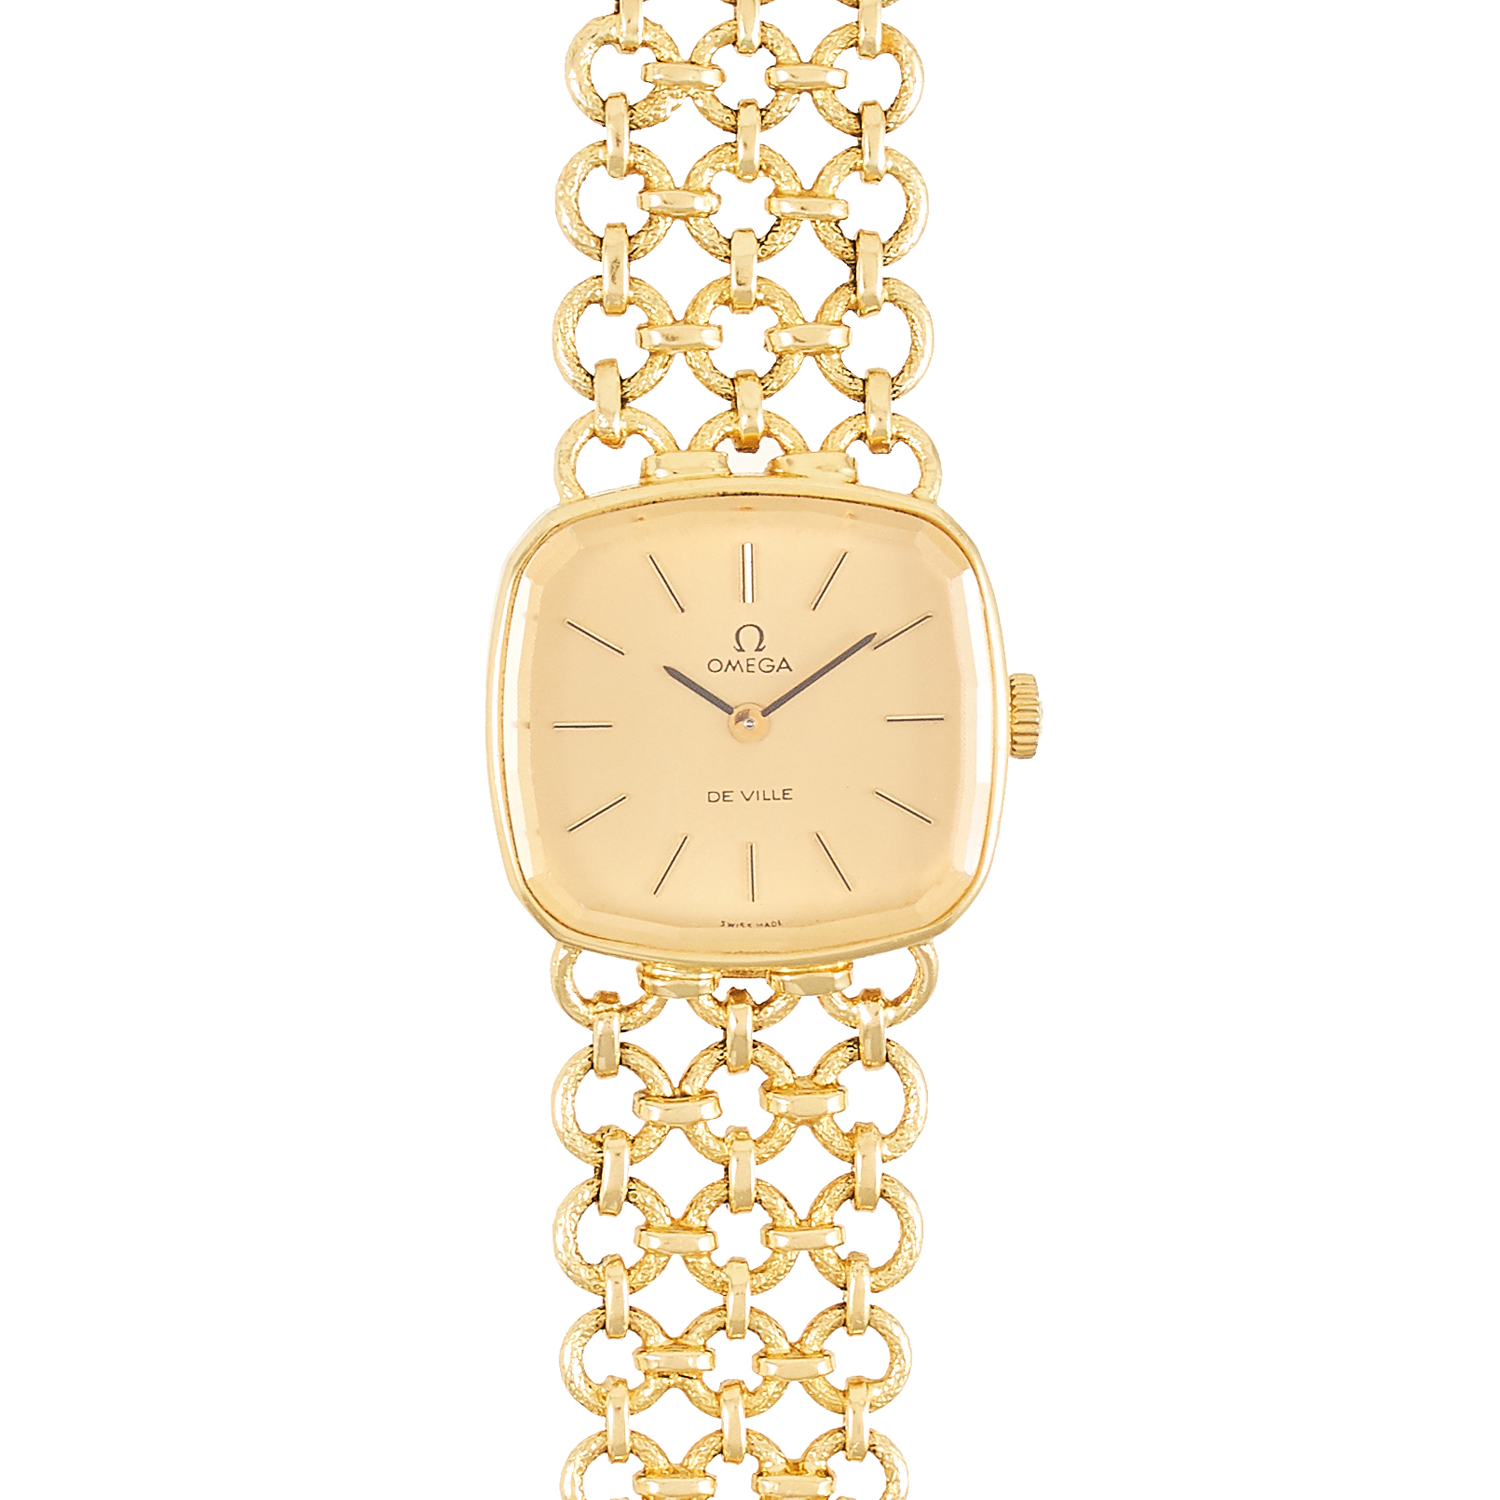 Los 291 - A LADIES OMEGA DE VILLE WRIST WATCH in 18ct yellow gold, the cushion shaped face within a circular